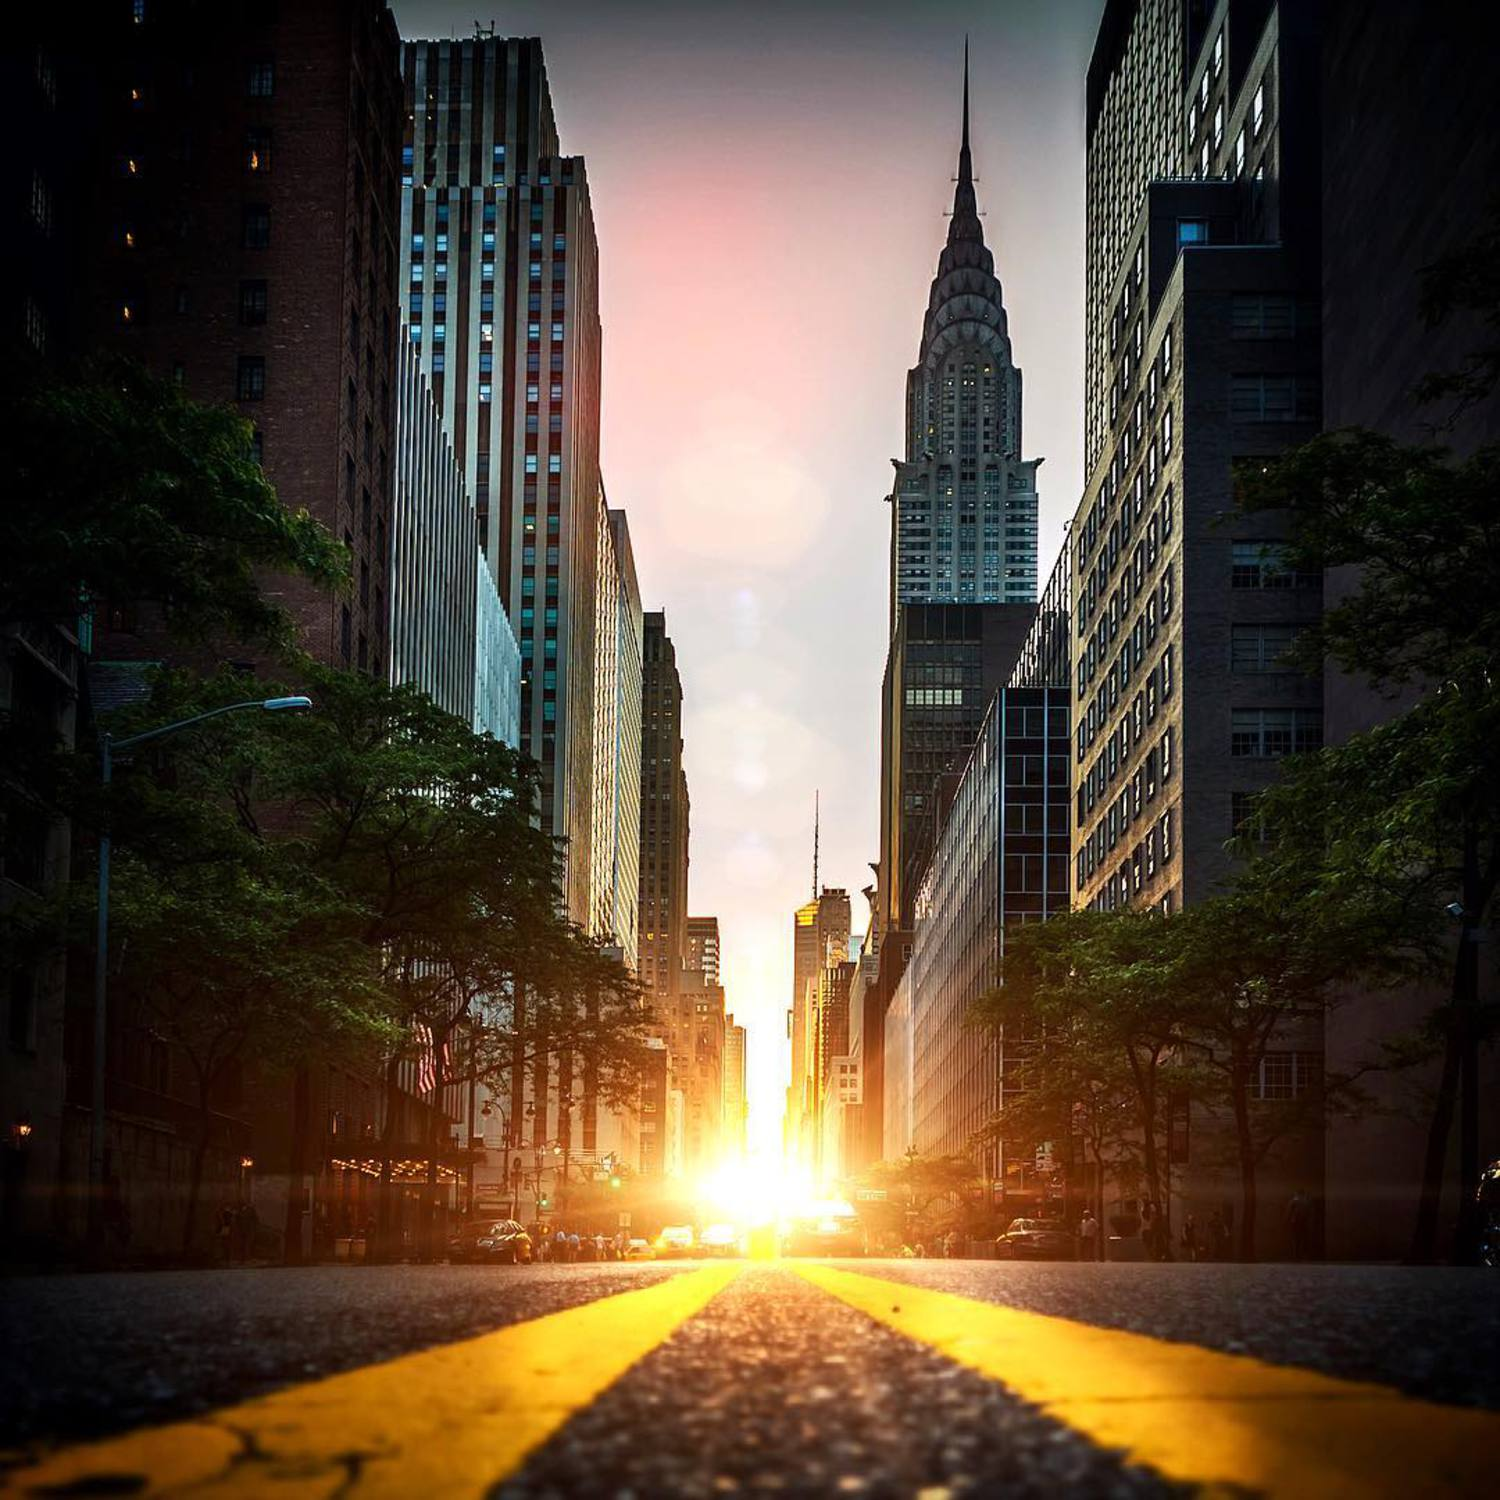 Who's ready for this years #manhattanhenge ? #CNNSpace #NBC4NY #newyorkcity #nycprimeshot #iloveny #nycpassion #ilovenewyork #buildingstylesgf #nybynewyorkers #empathynyc #instagramnyc #iheartnewyorkny #bestofnewyork #lovenyc #photowall #photooftheday #postcardsfromtheworld #imagesofnyc #insta_america #vibrant_globe #the_visionaries #myCity_life #Jaw_dropping_shotz #Splendidshots #Photowall #Hot_shot